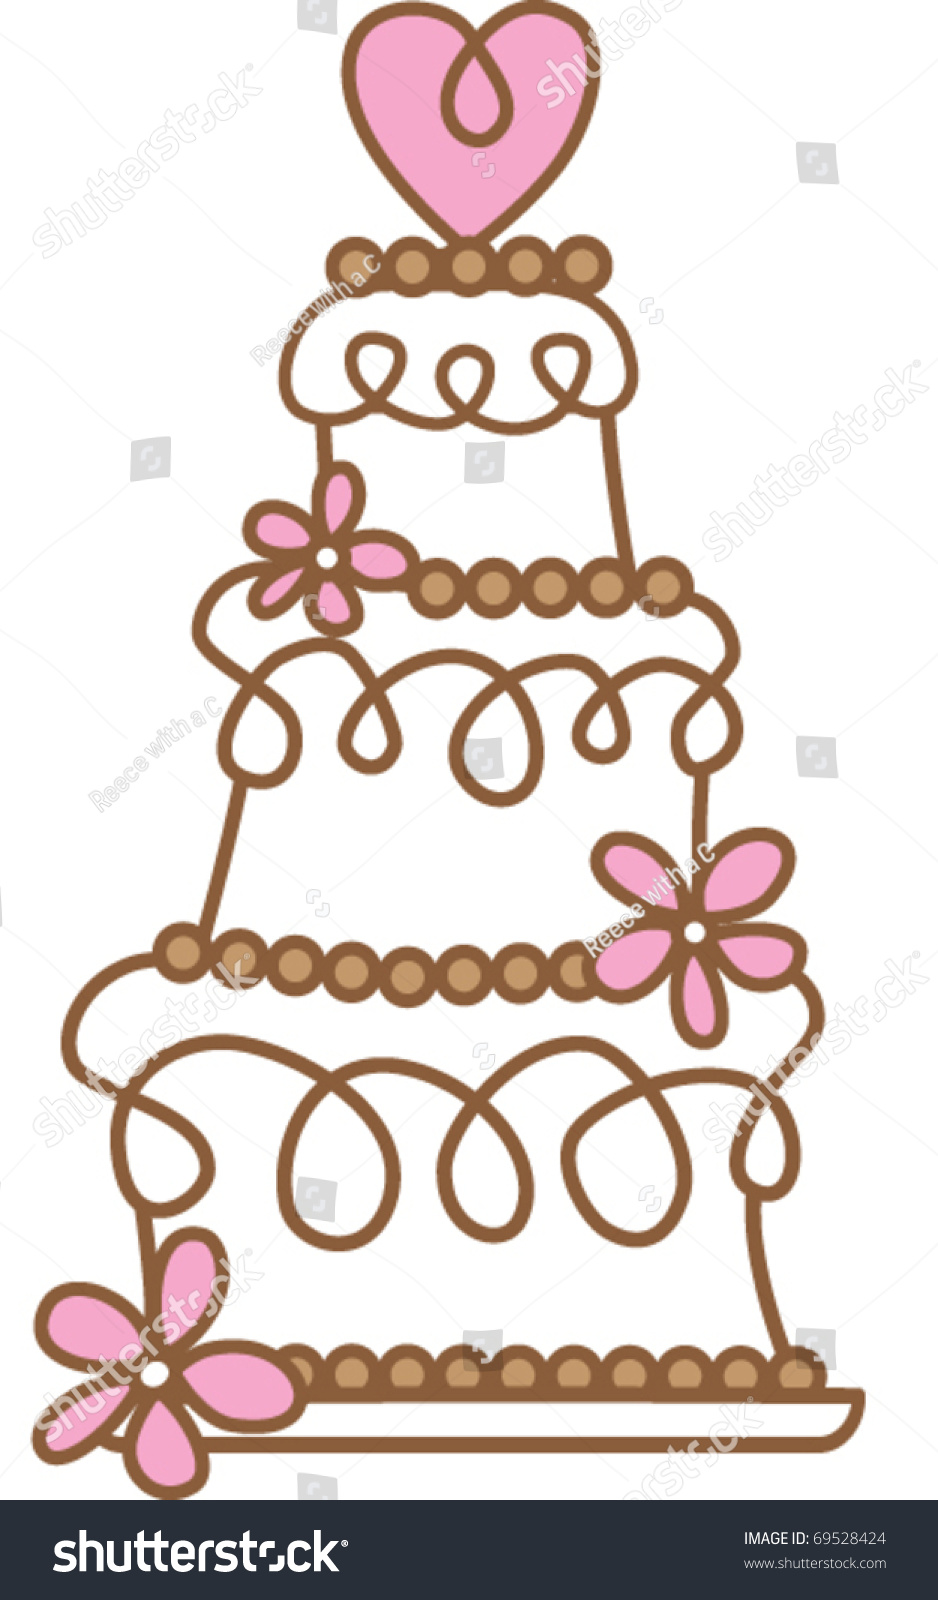 Retro Cake Clip Art : Retro Wedding Cake Stock Vector Illustration 69528424 ...